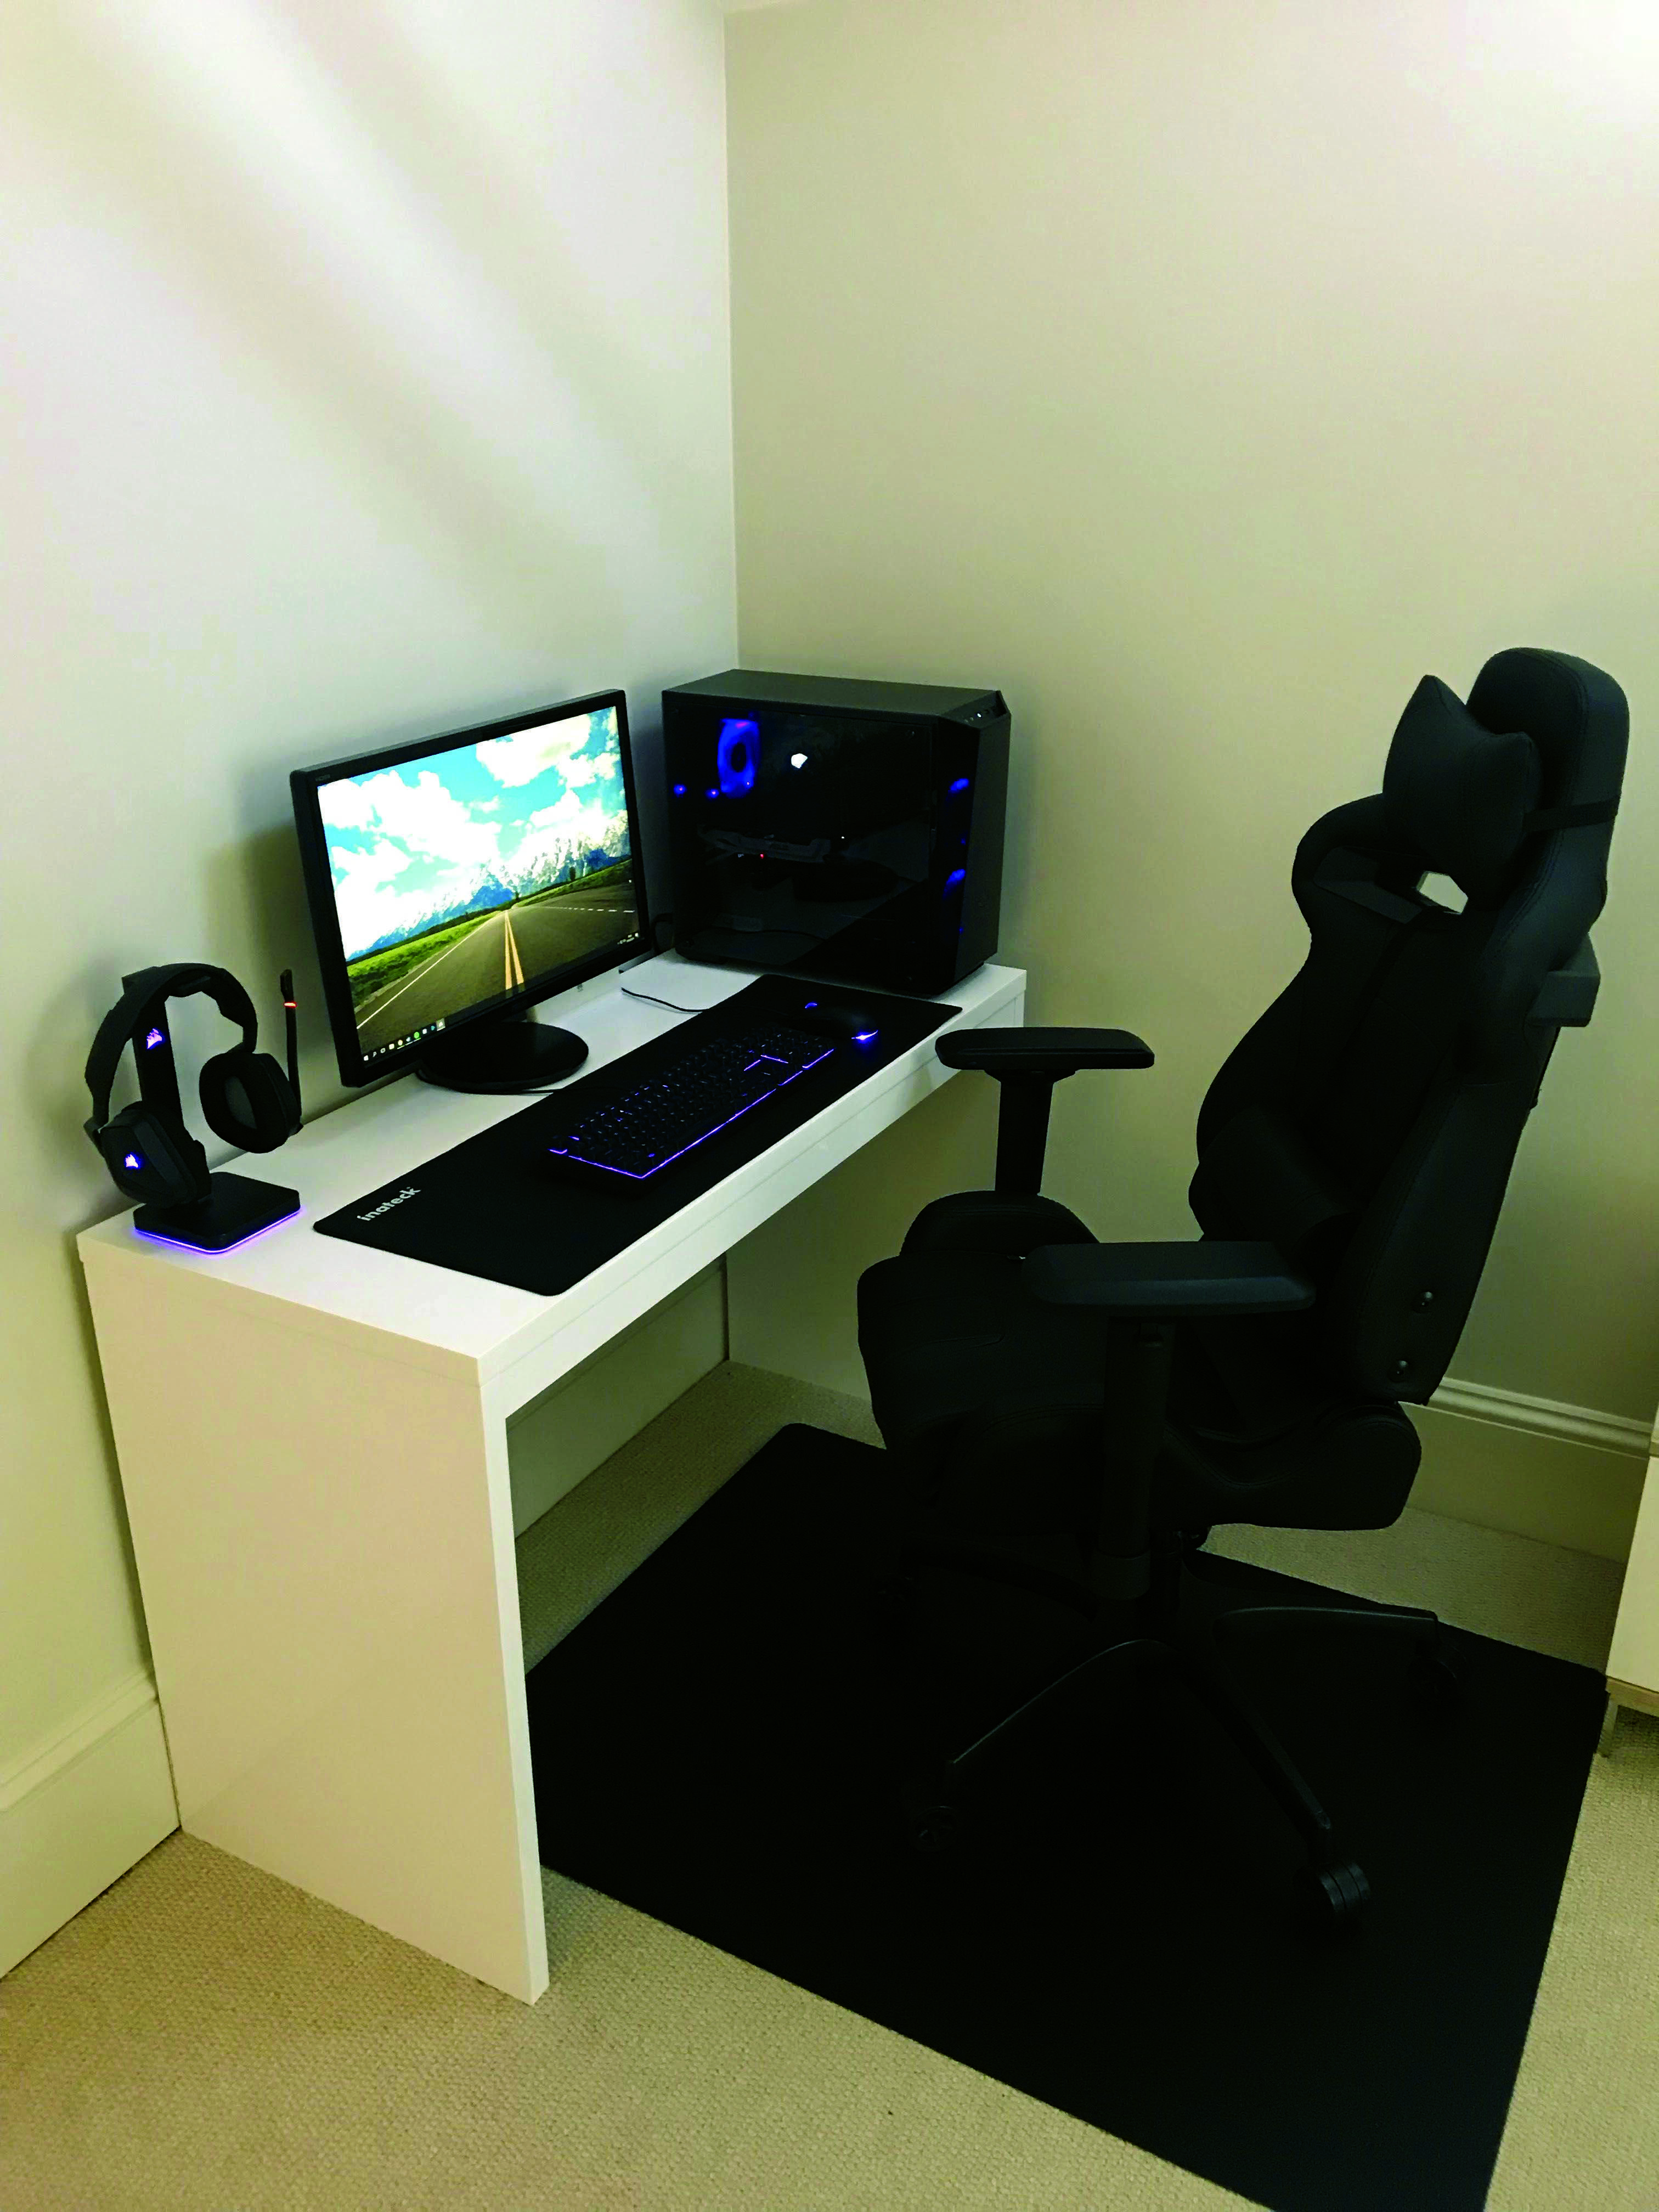 DIY Computer Desk Concepts (With images) Gaming computer